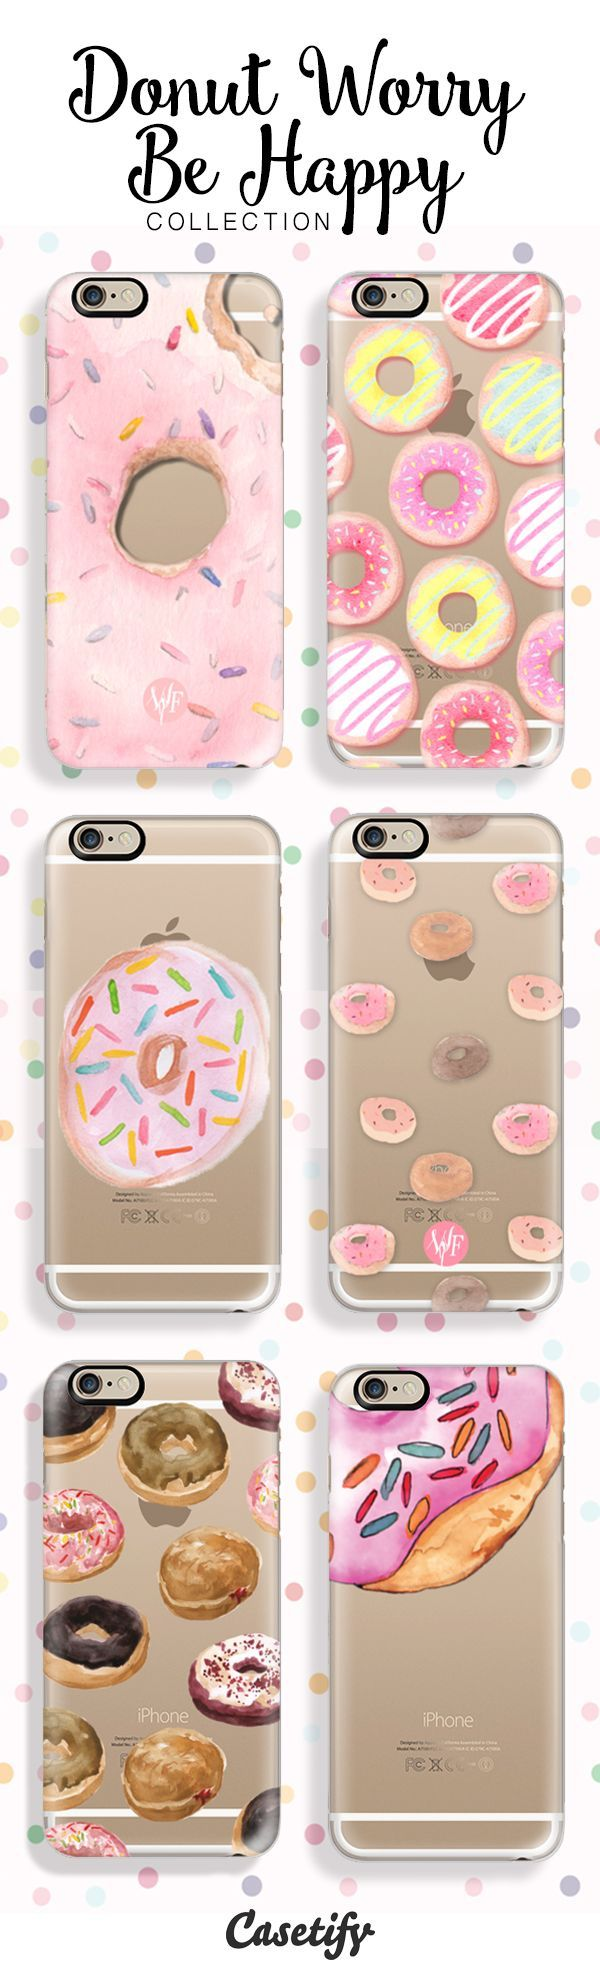 Donut Worry, Be Happy. Whoo is excited for the Weekend? Shop our decadent designs here: http://www.casetify.com/artworks/Pgtc2asIE8